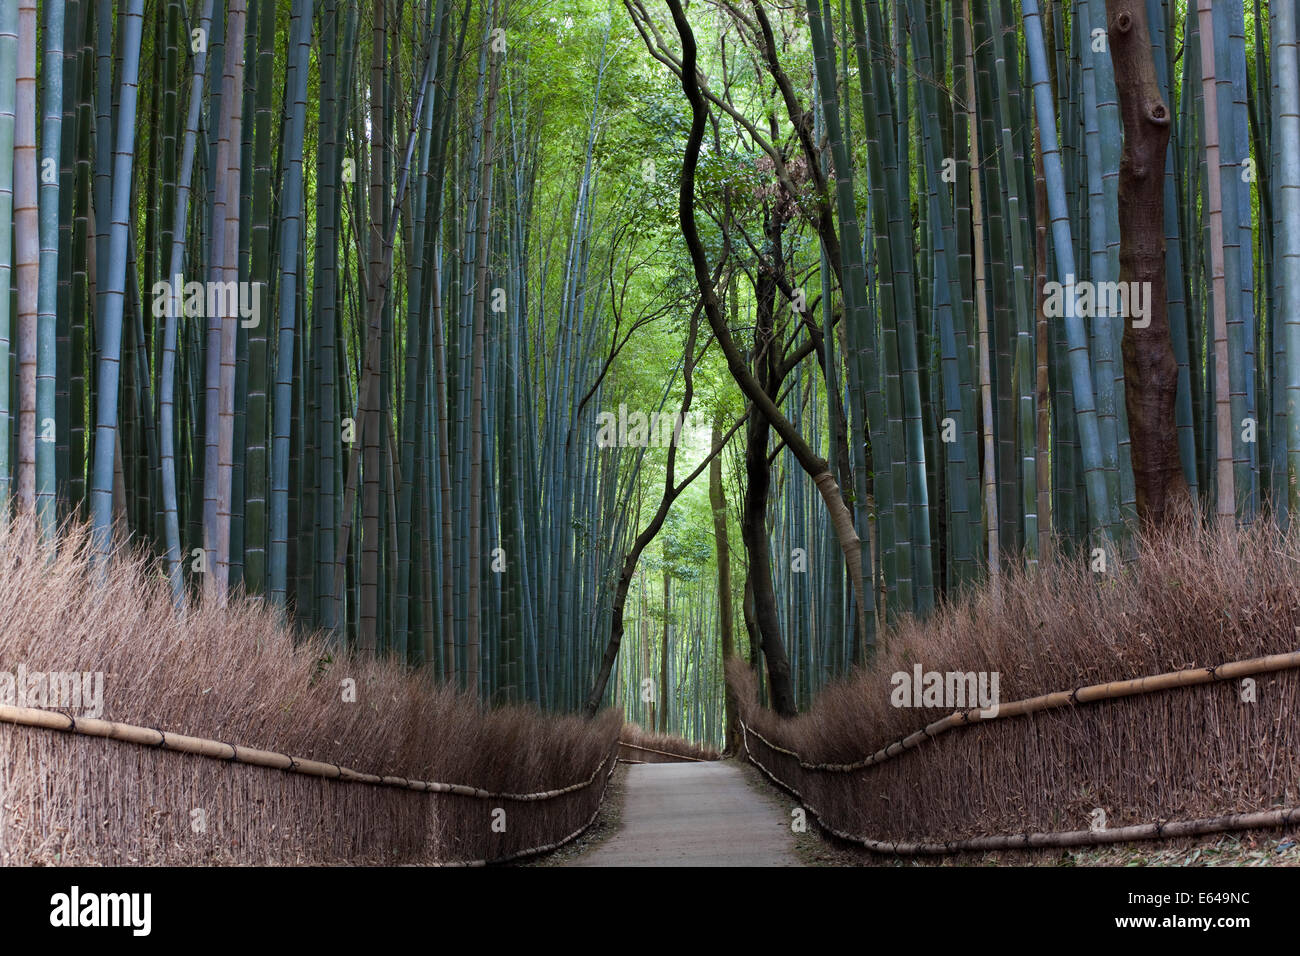 Path through bamboo forest, Kyoto, Japan - Stock Image